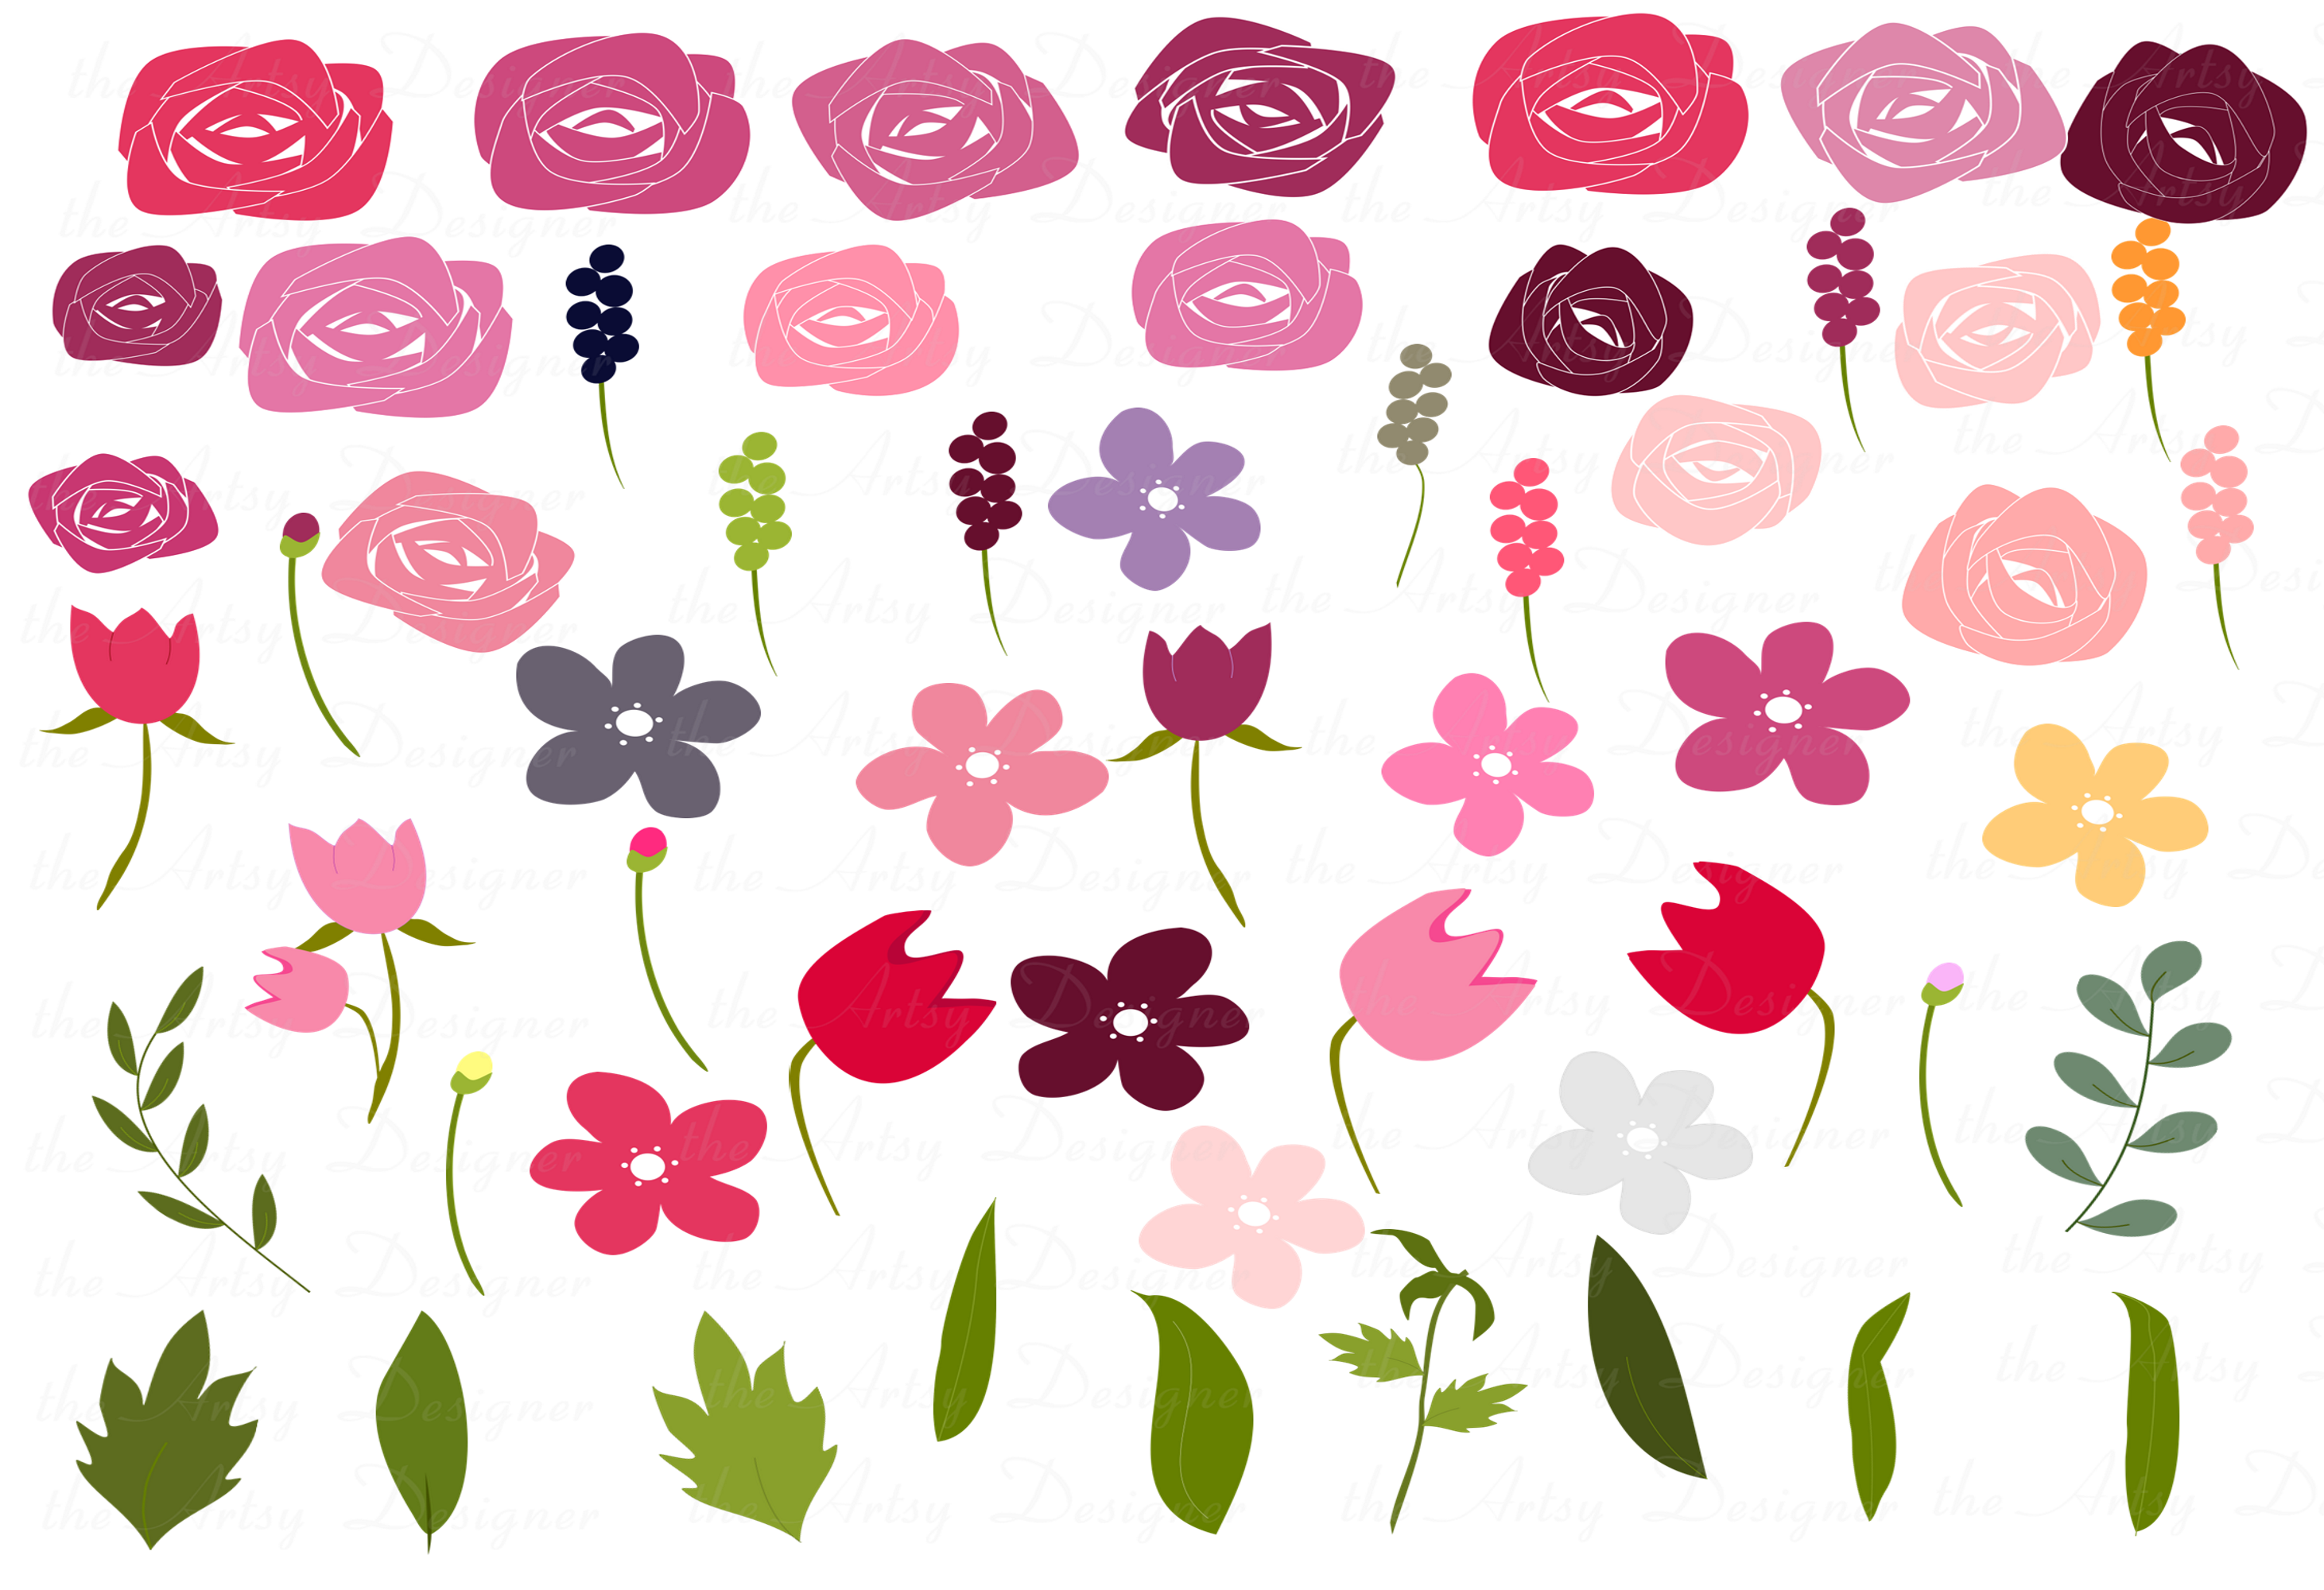 Burgundy Maroon Pink Floral Roses Sublimation Clipart Bundle example image 3